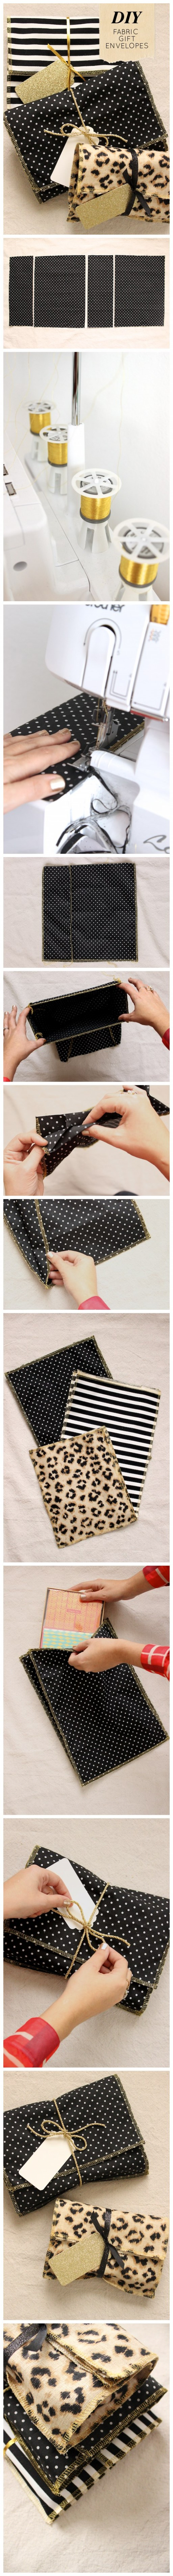 How to sew fabulous DIY fabric gift envelope step by step DIY tutorial instructions